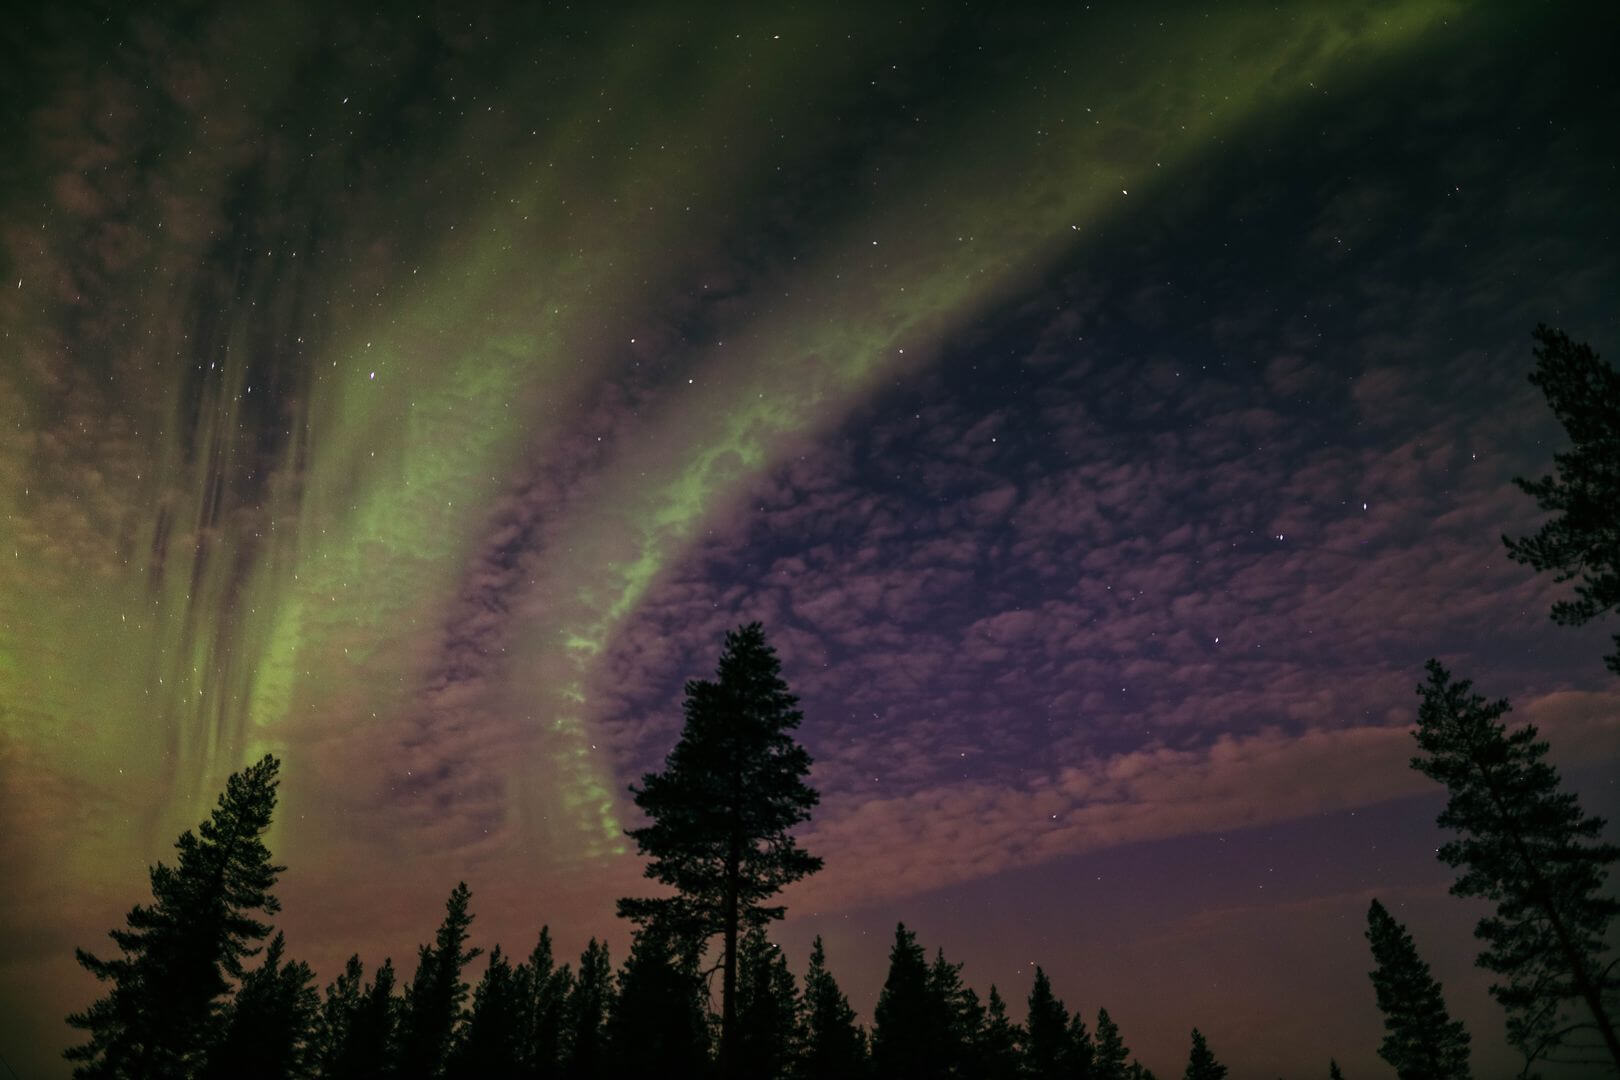 Northern lights in a starry night sky